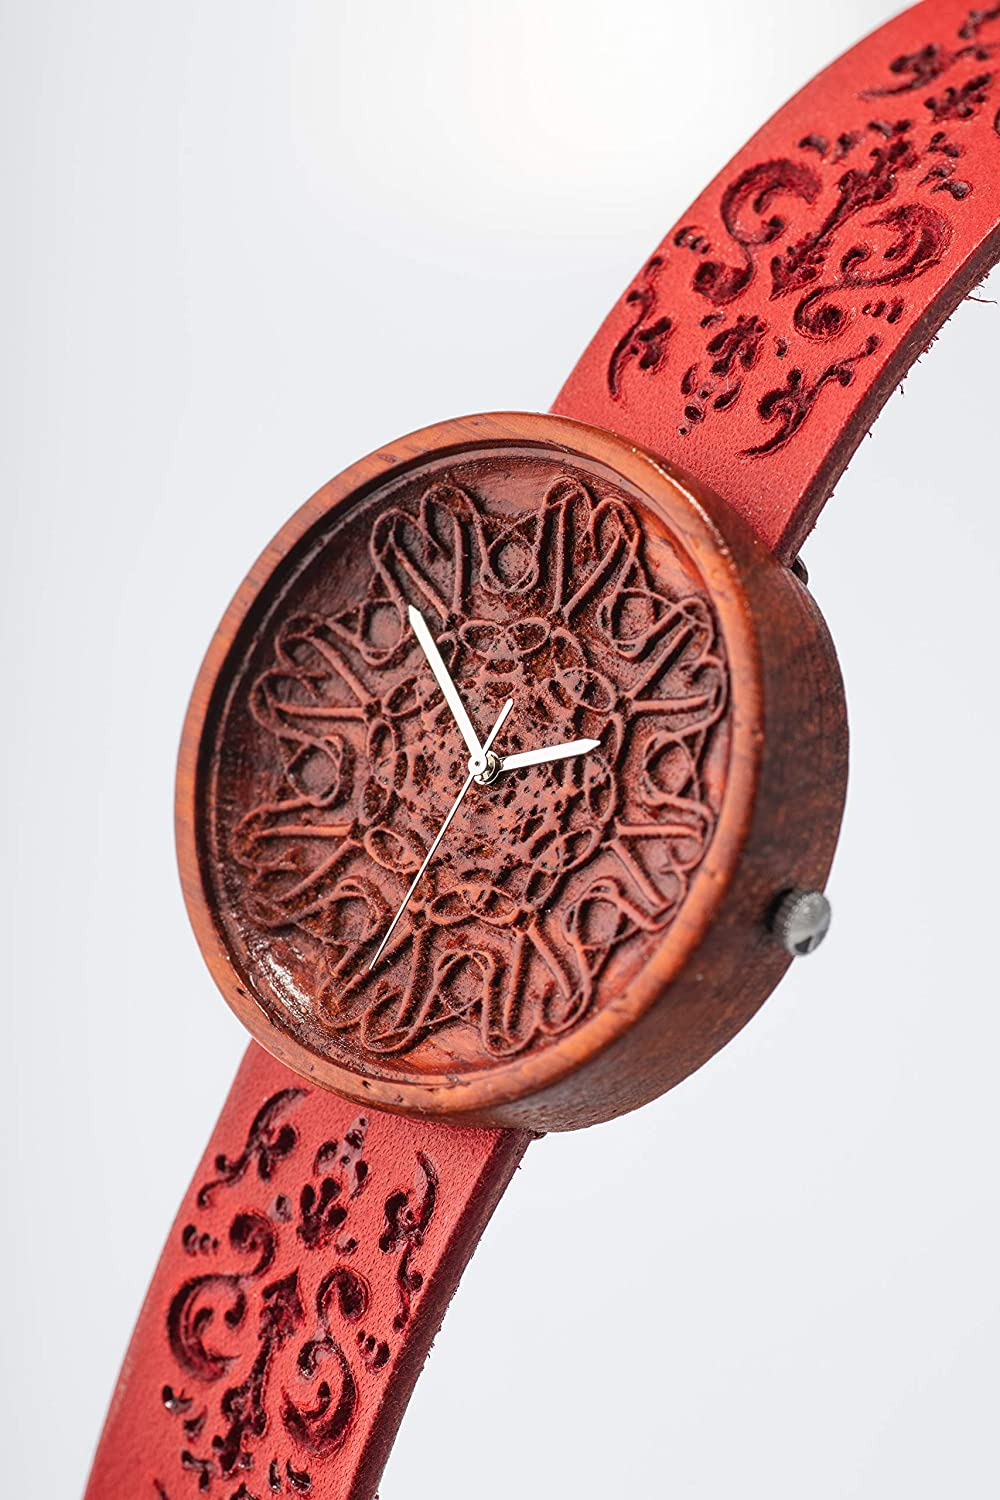 cda237f74 Amazon.com: Red Womens Wooden Watches by Ovi Watch, Swiss Quartz, Sapphire  Crystal Glass, Engraved Leather Watch Strap, Unique Design Timepiece, ...